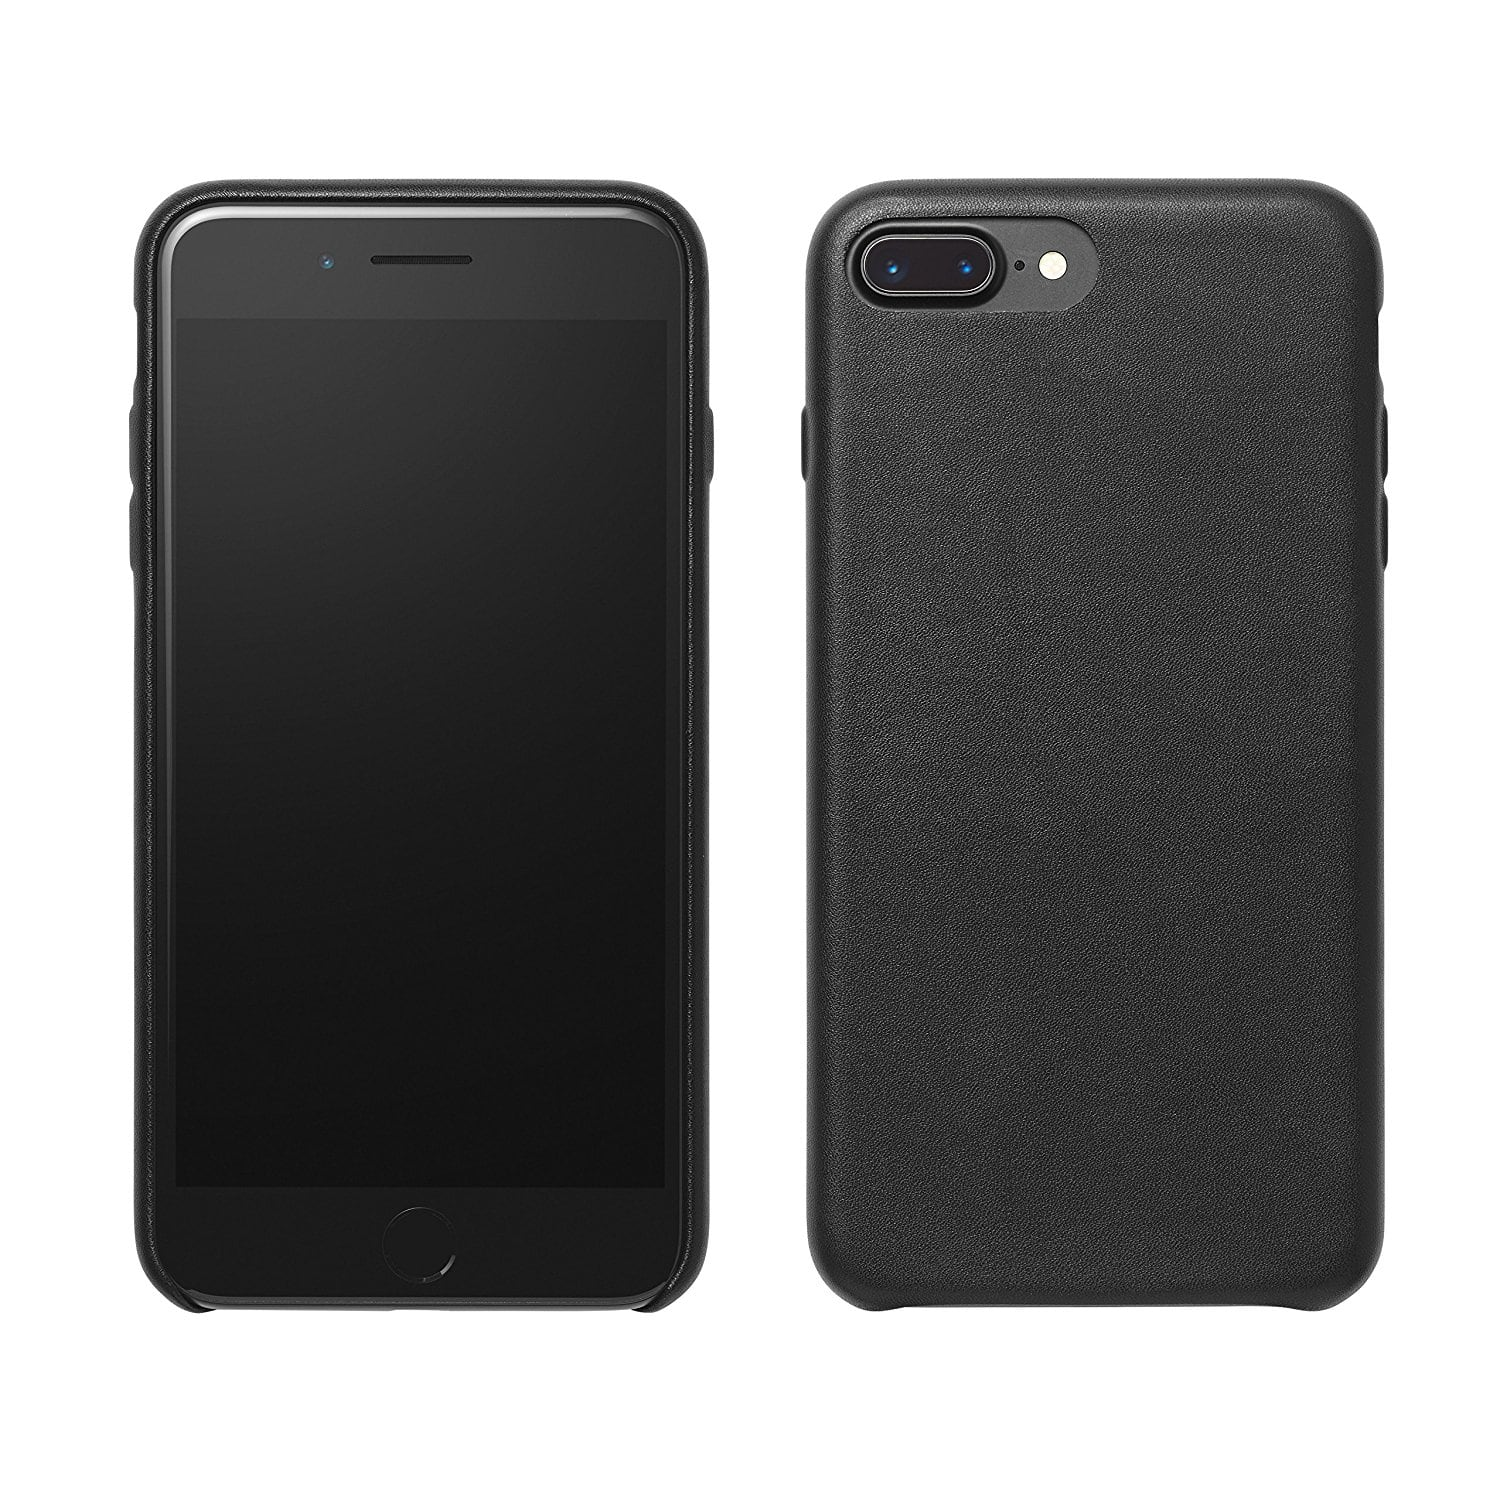 Add-On Item:  AmazonBasics iPhone 7/8 Plus Case - $1.36